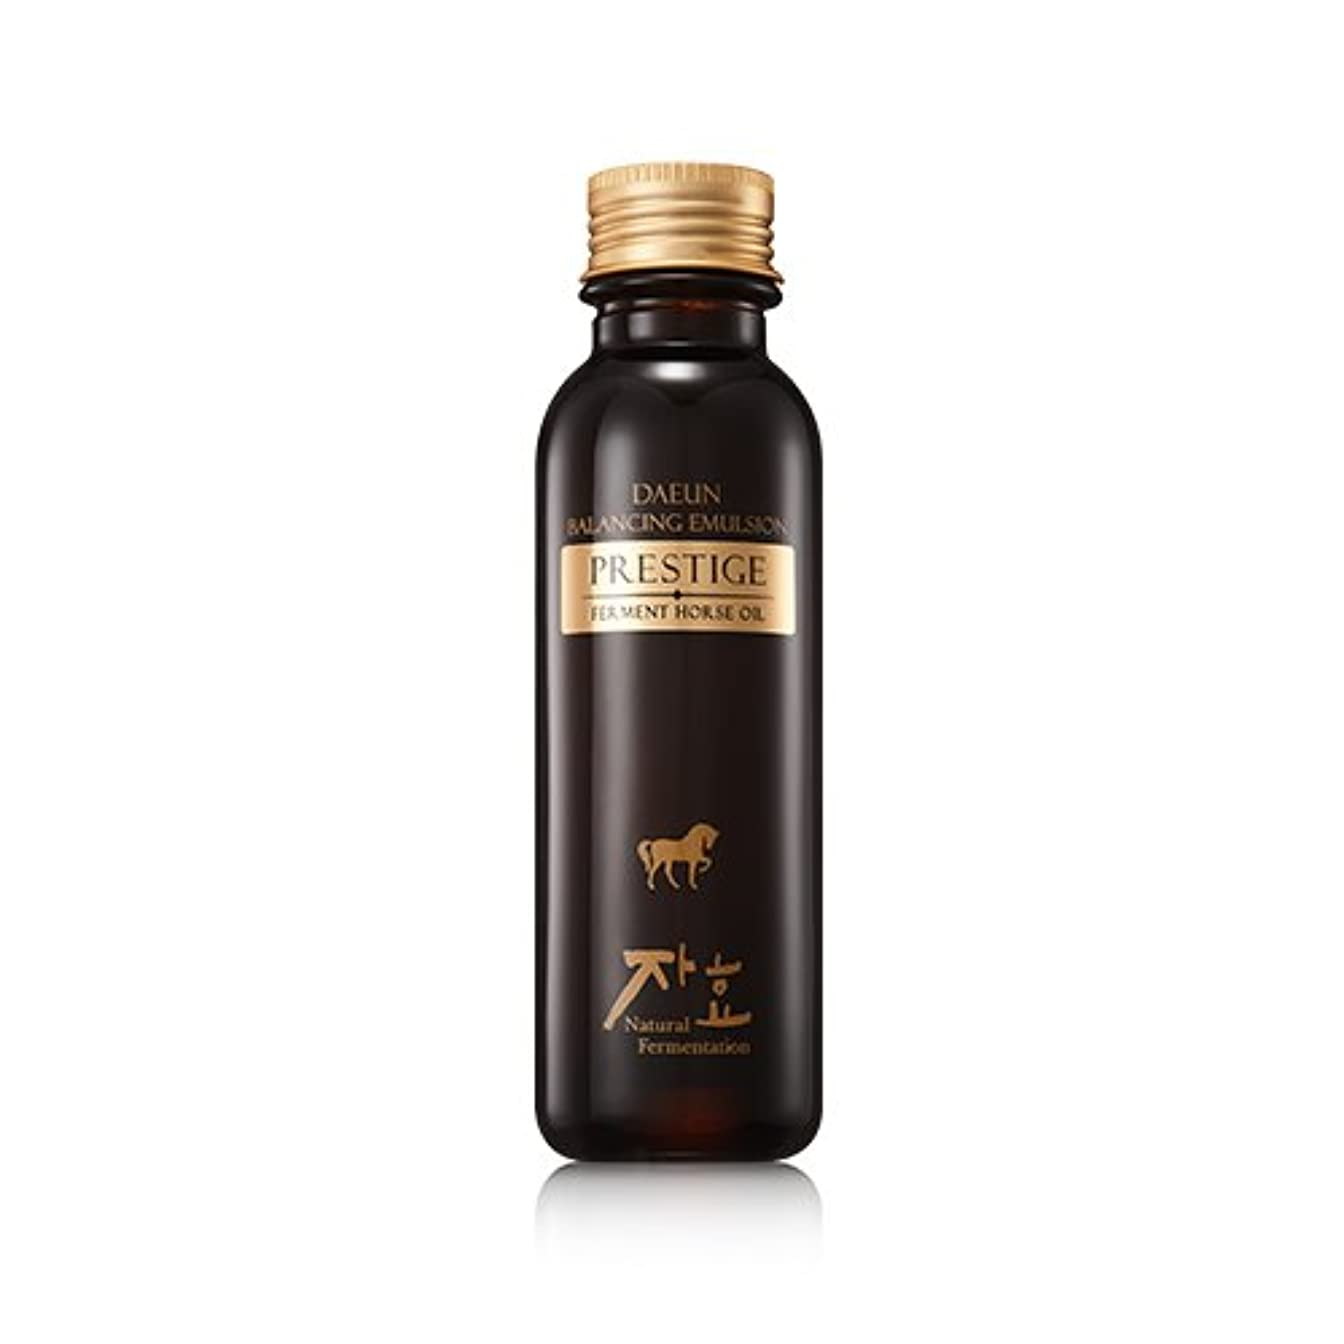 スマート配管ブルZHAHYO Daeun Balancing Prestige Fermented Horse Oil Emulsion(Lotion) 150ml/Korea Cosmetics